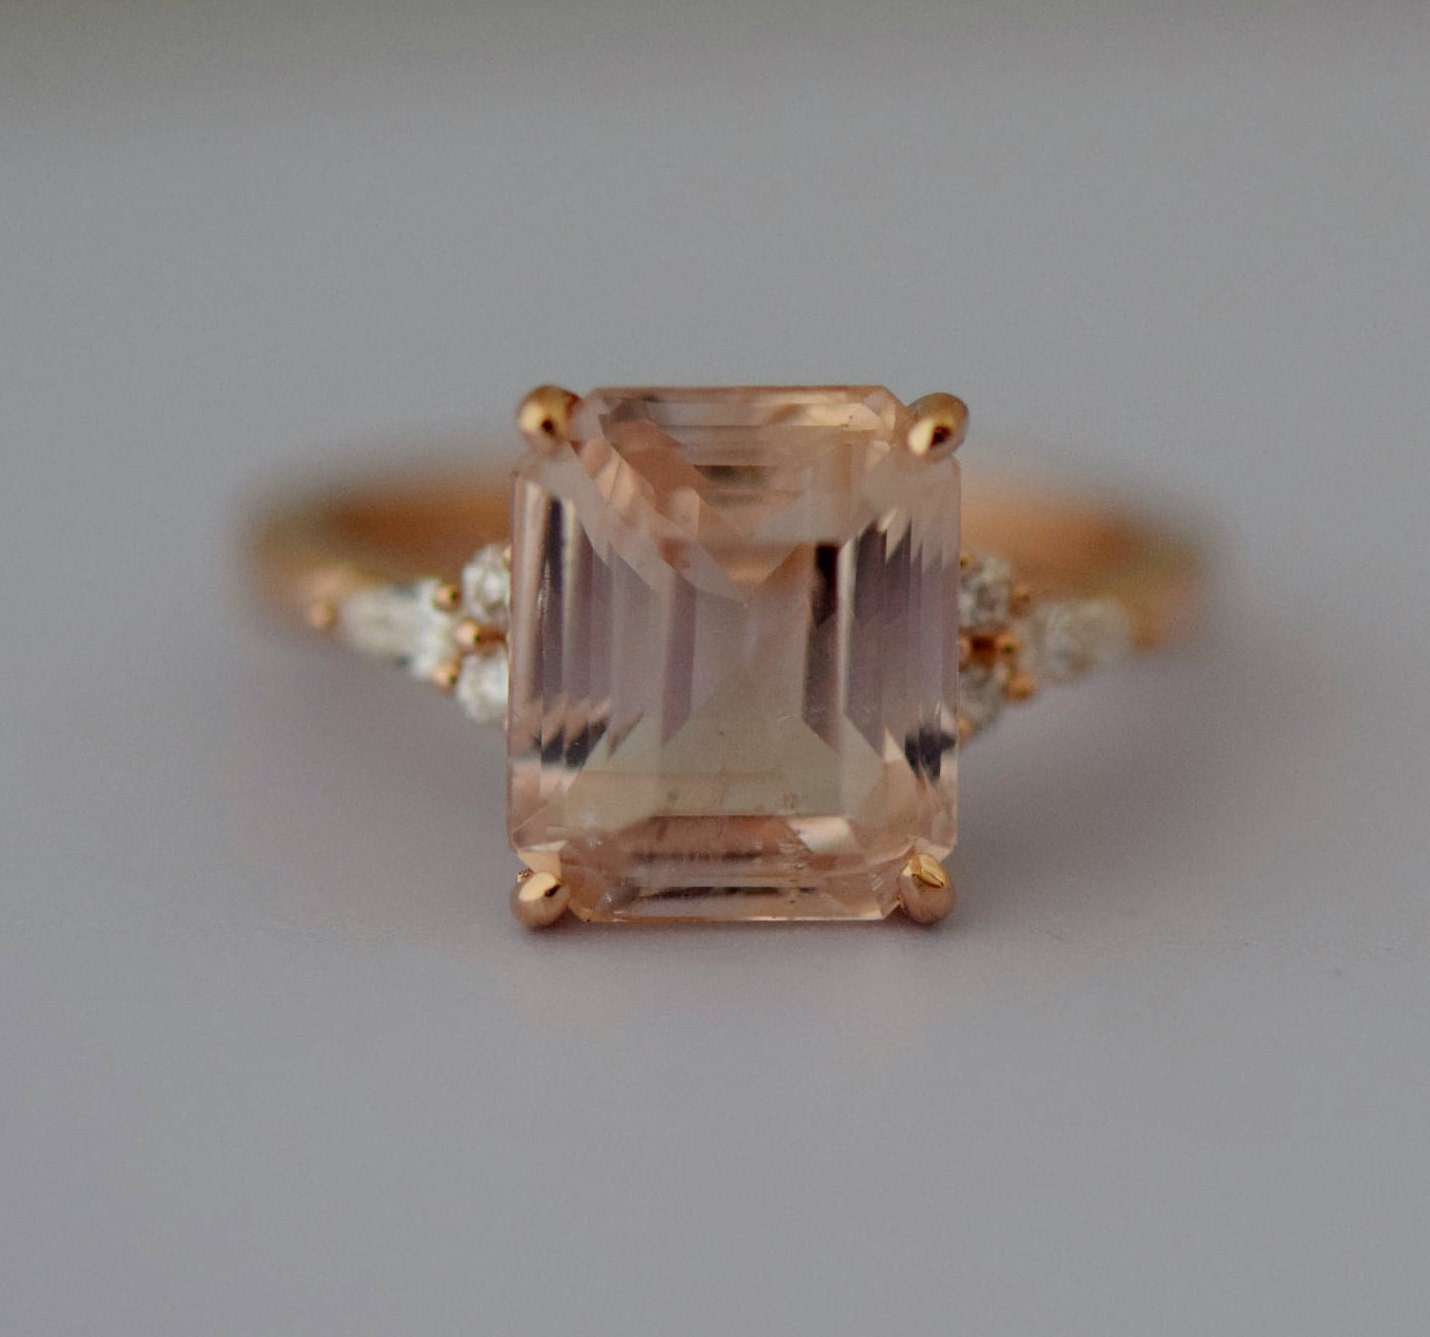 Engagement ring rose gold engagement ring peach champagne sapphire engagement ring rose gold engagement ring peach champagne sapphire ring campari ring emerald cut diamond ring 494ct ring by eidelprecious junglespirit Images